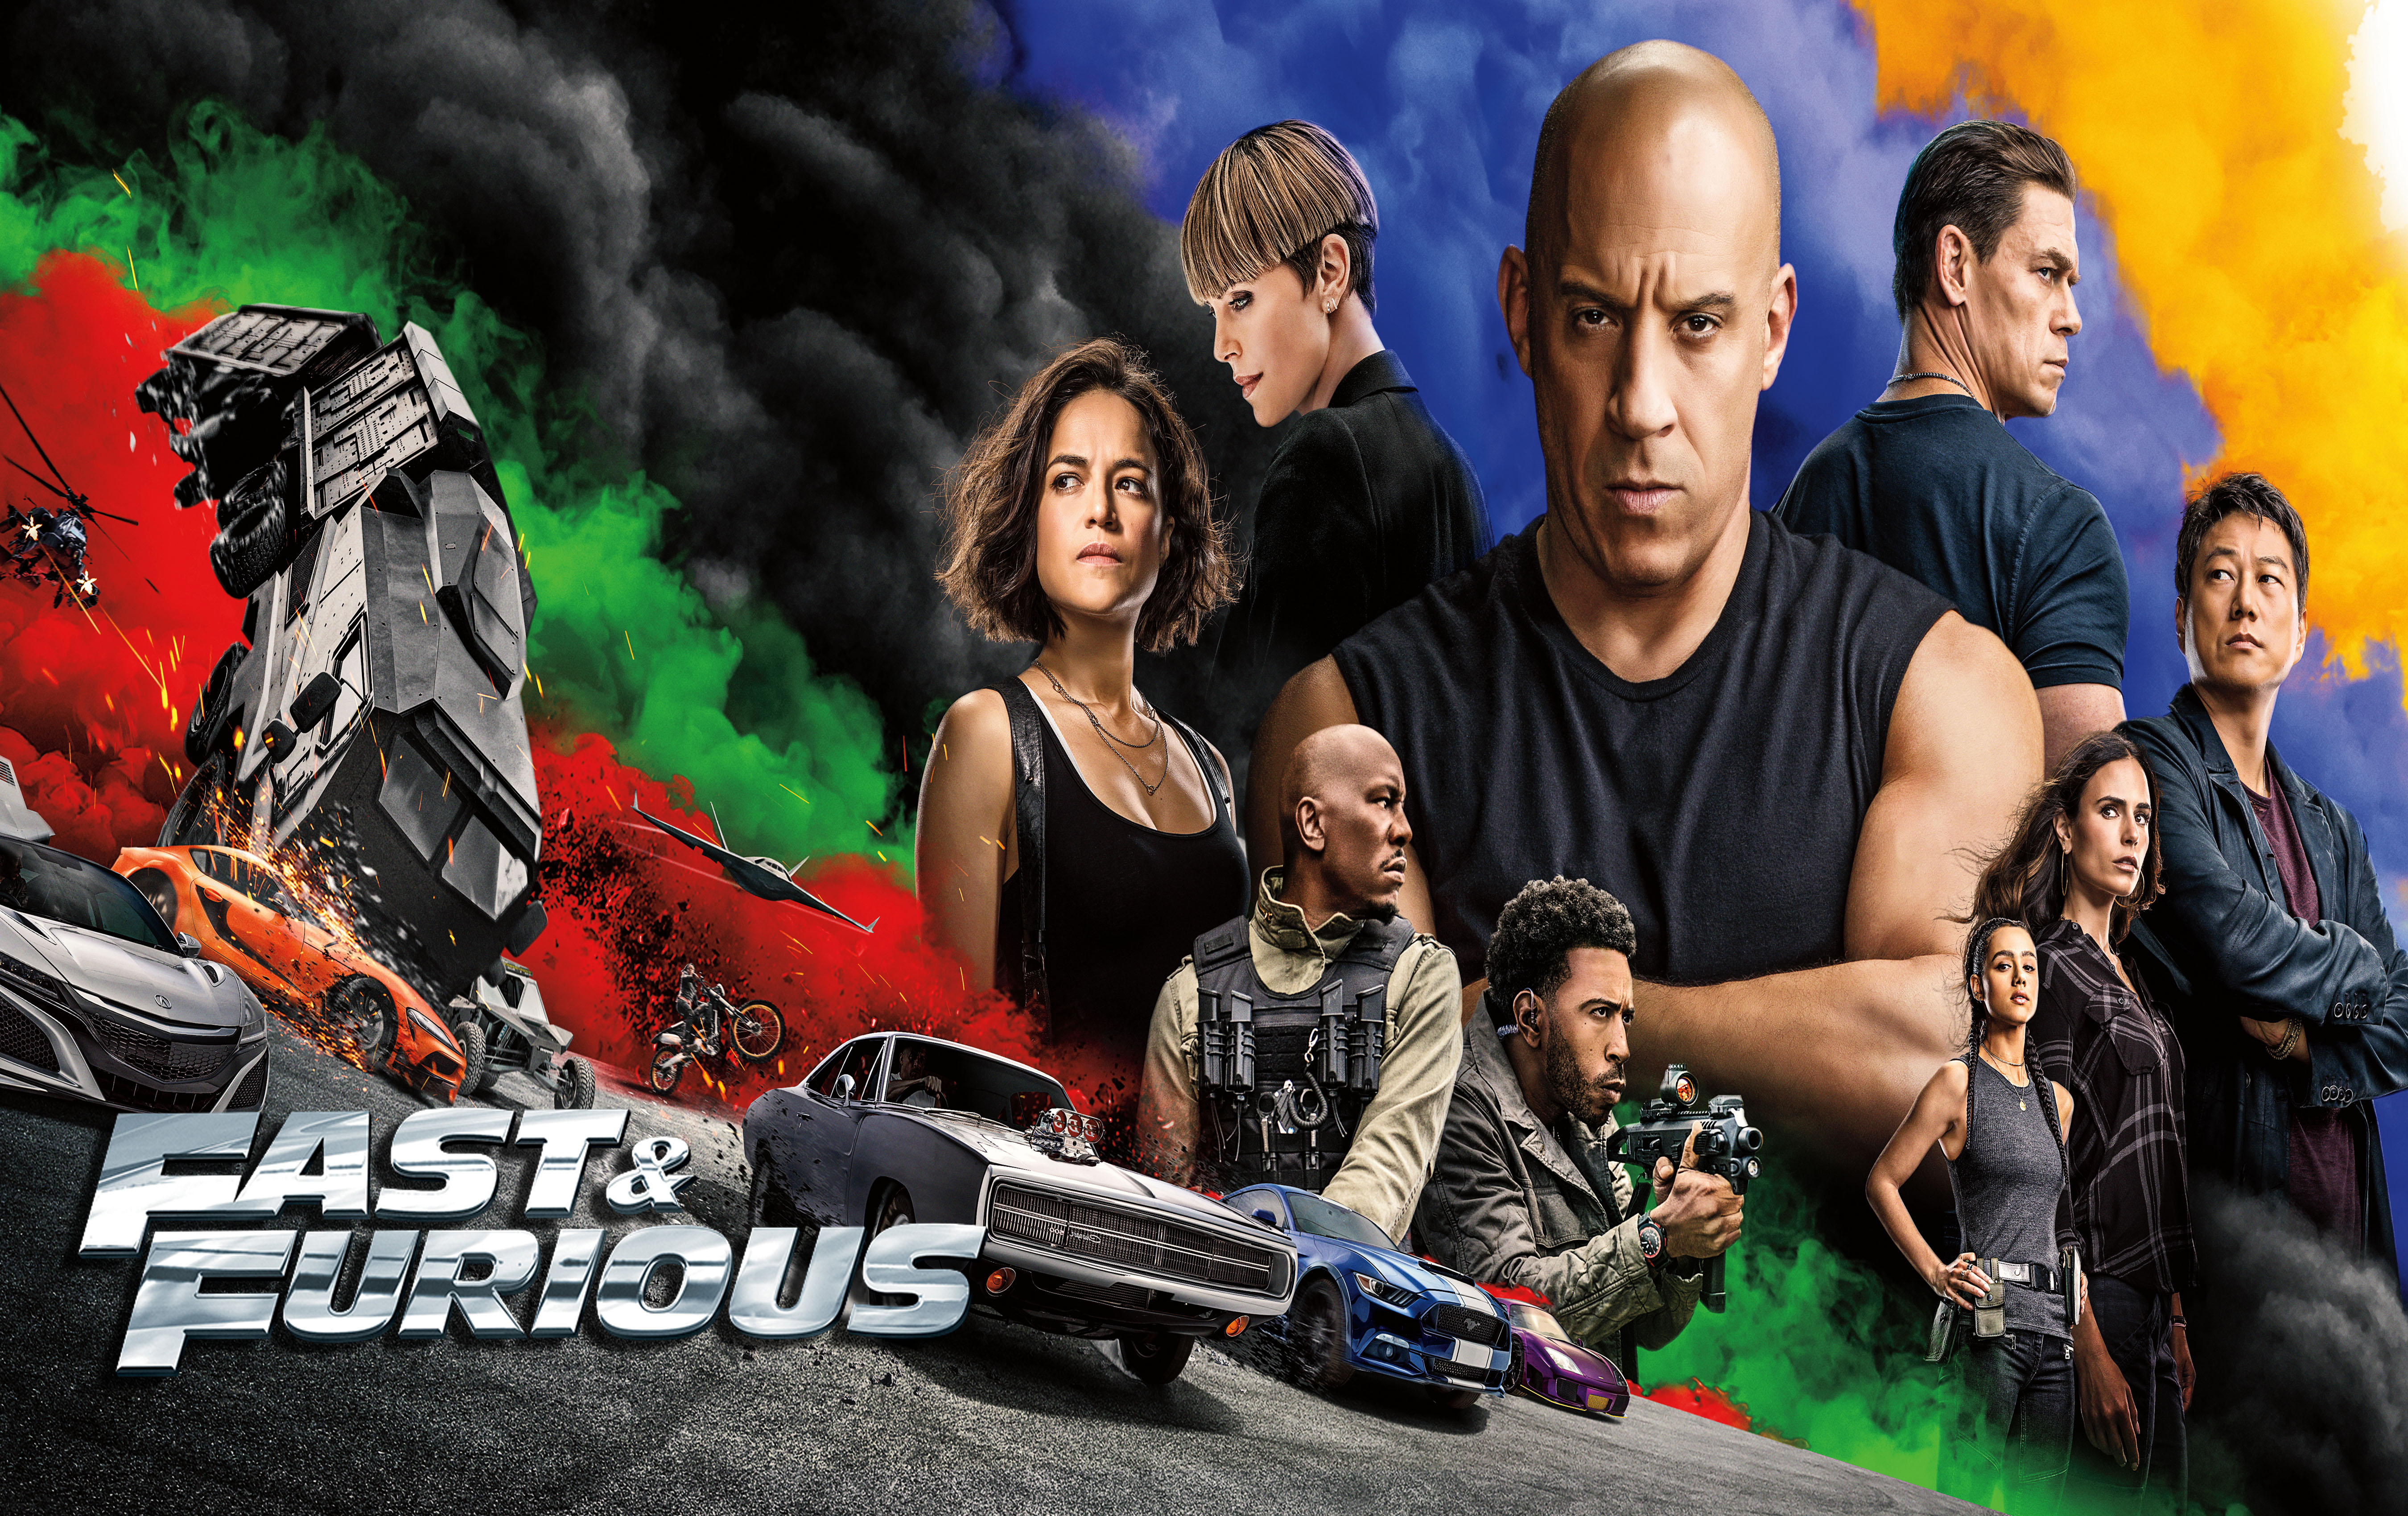 fast and furious 9 full hd wallpaper New Wallpapers 5400x3400